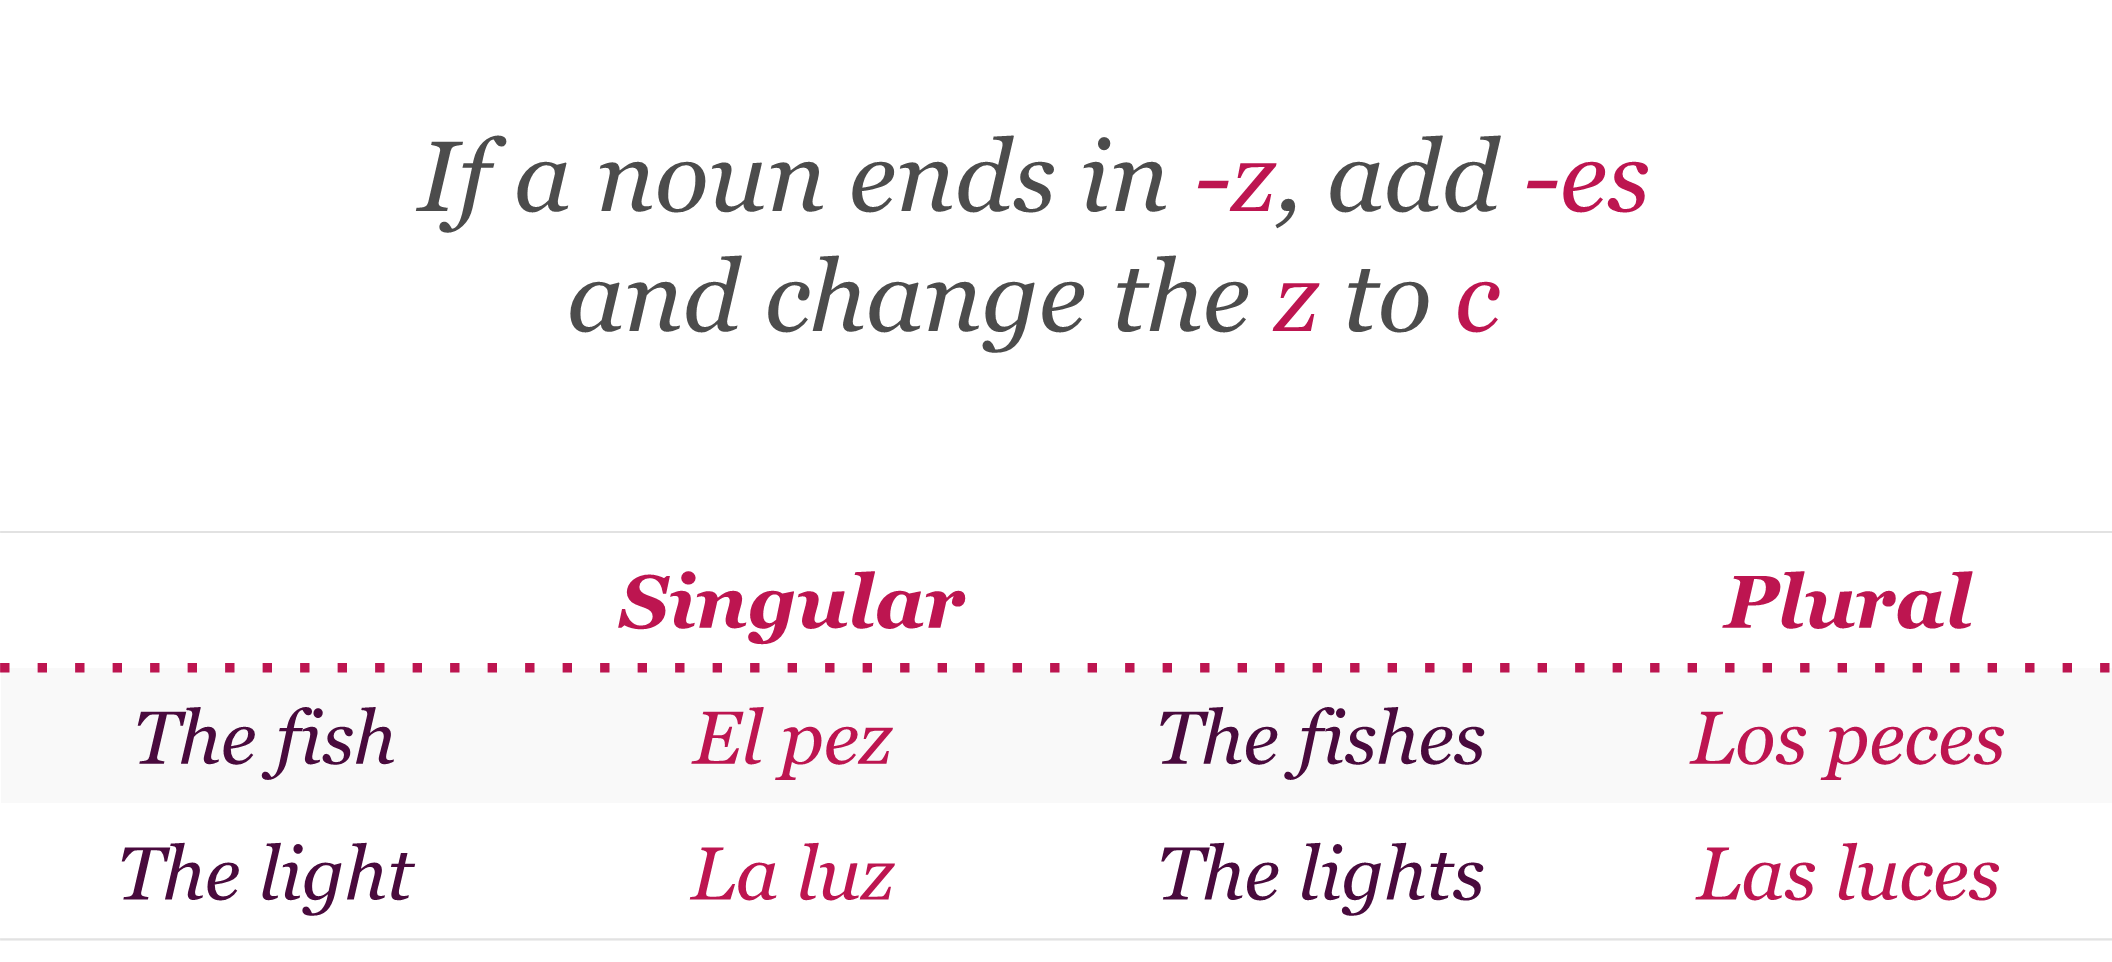 Plural Form Of Fish In Spanish